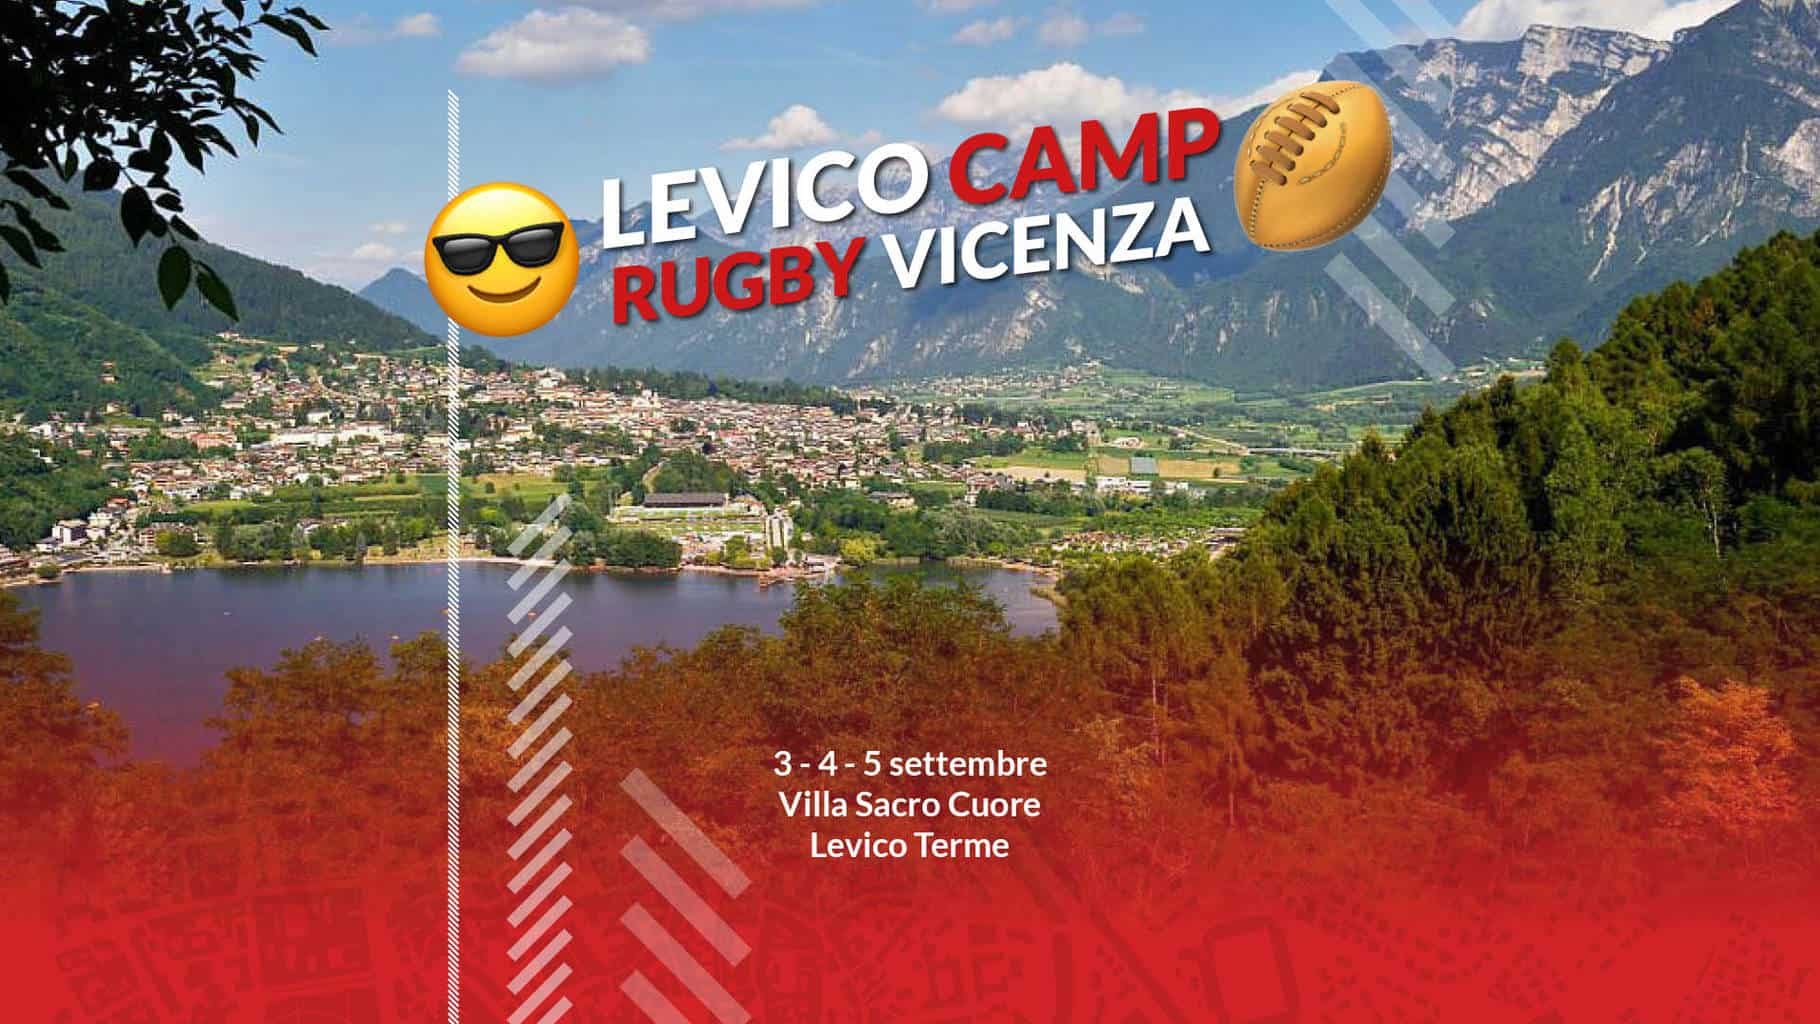 Levico Camp Rugby Vicenza 2021